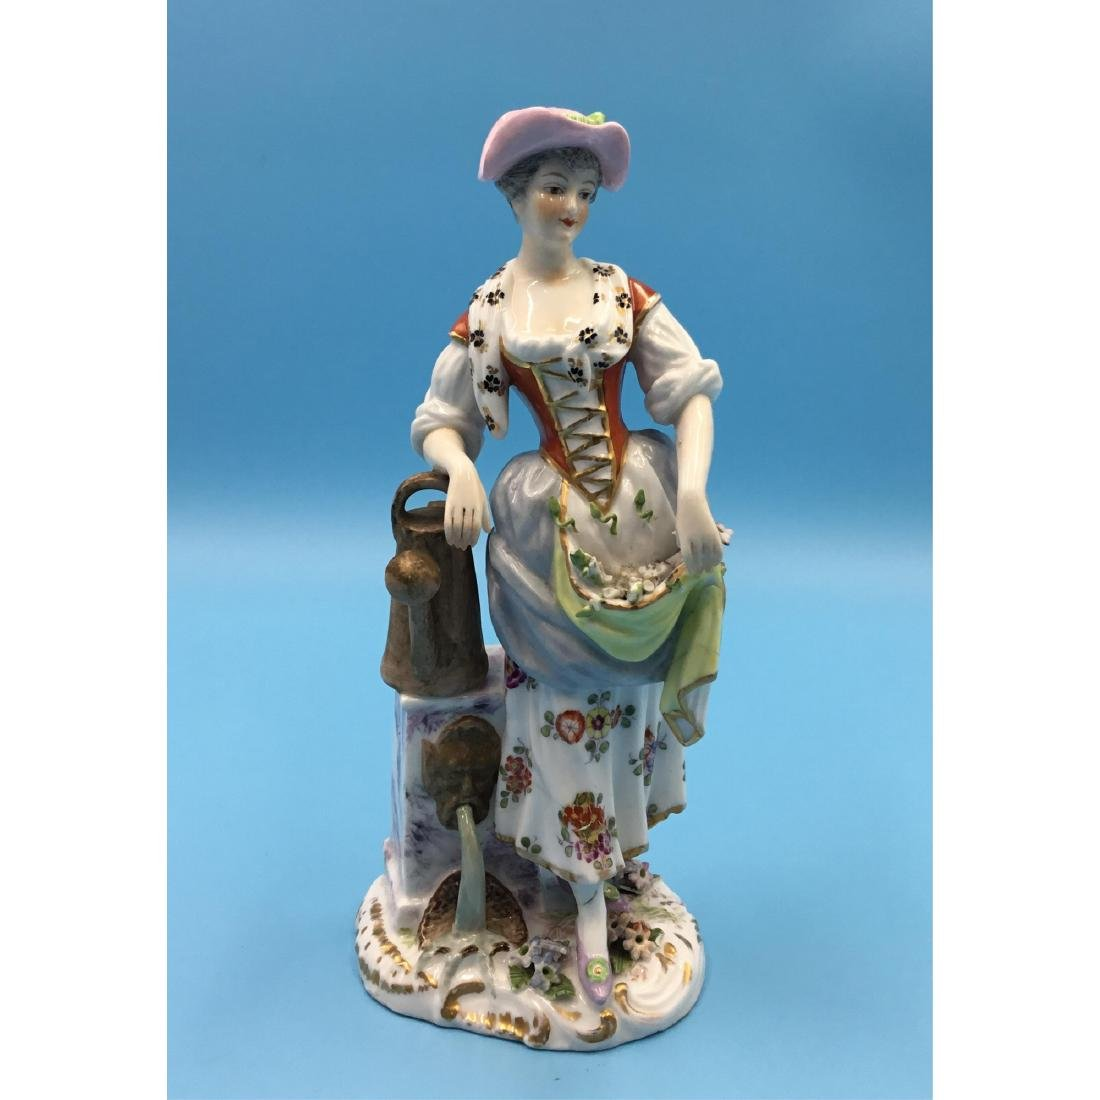 ACHILLE BLOCH FRENCH PORCELAIN FIGURINE